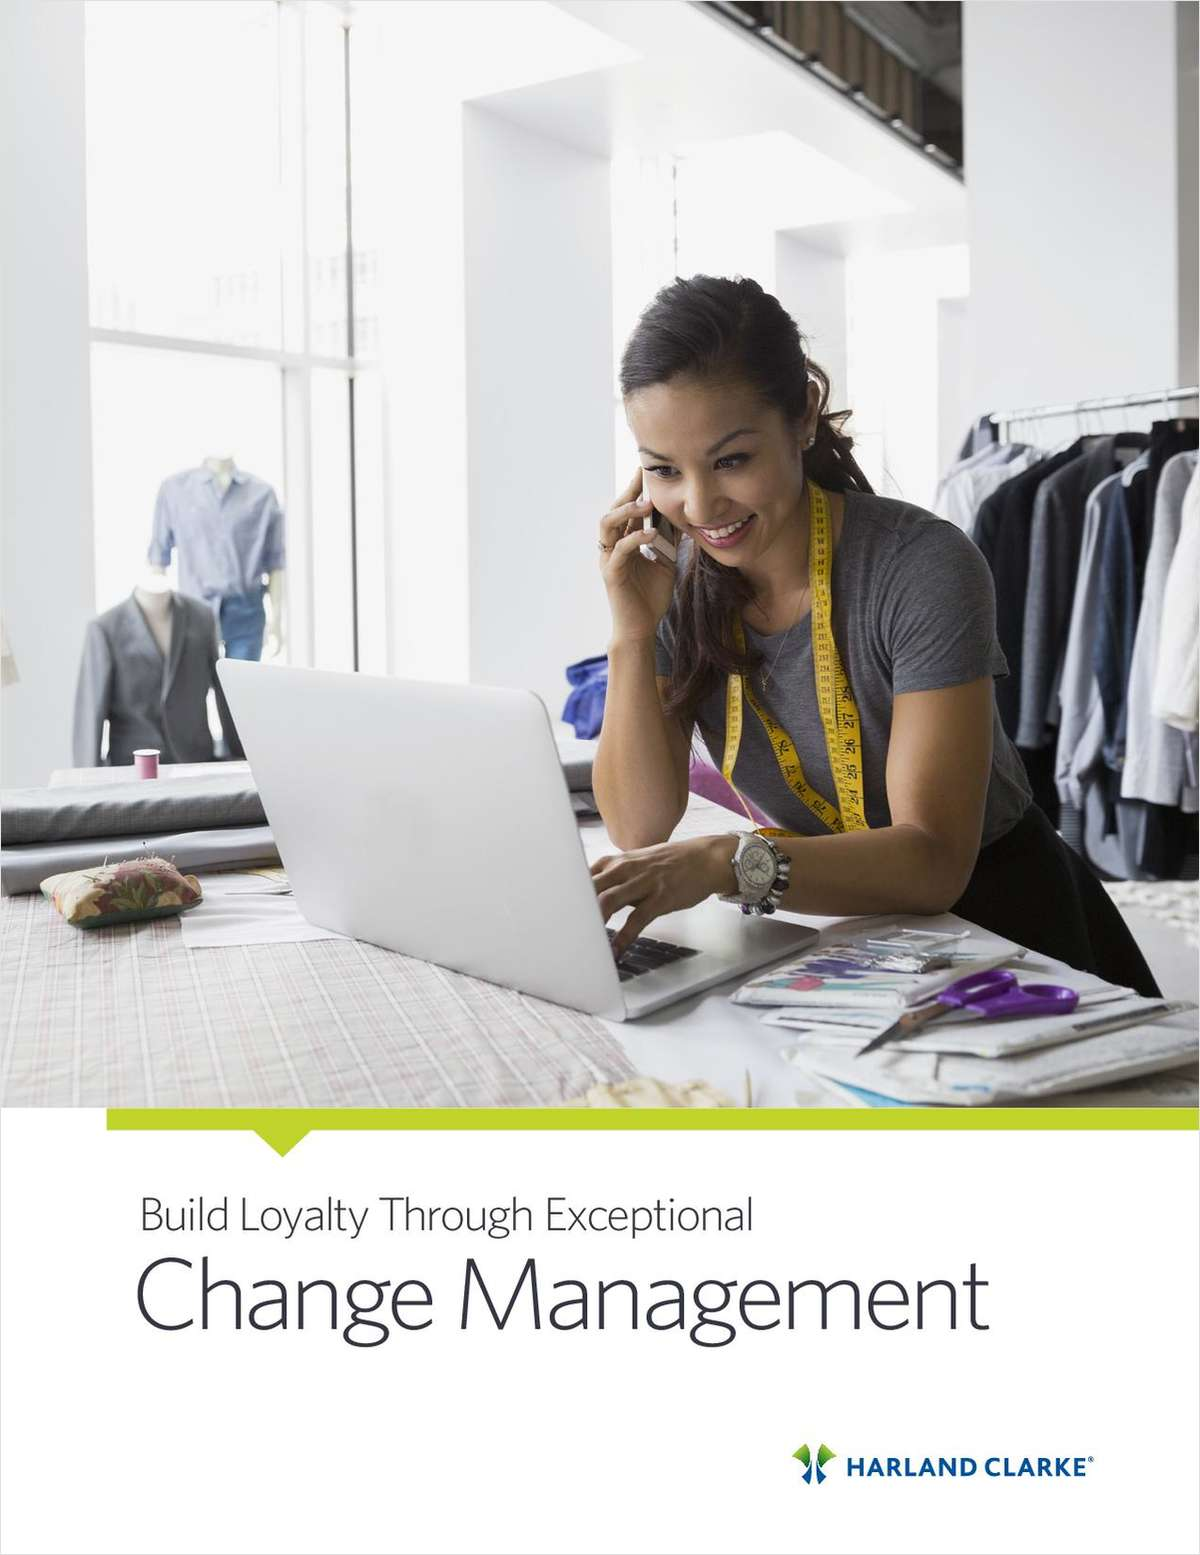 Build Loyalty Through Exceptional Change Management